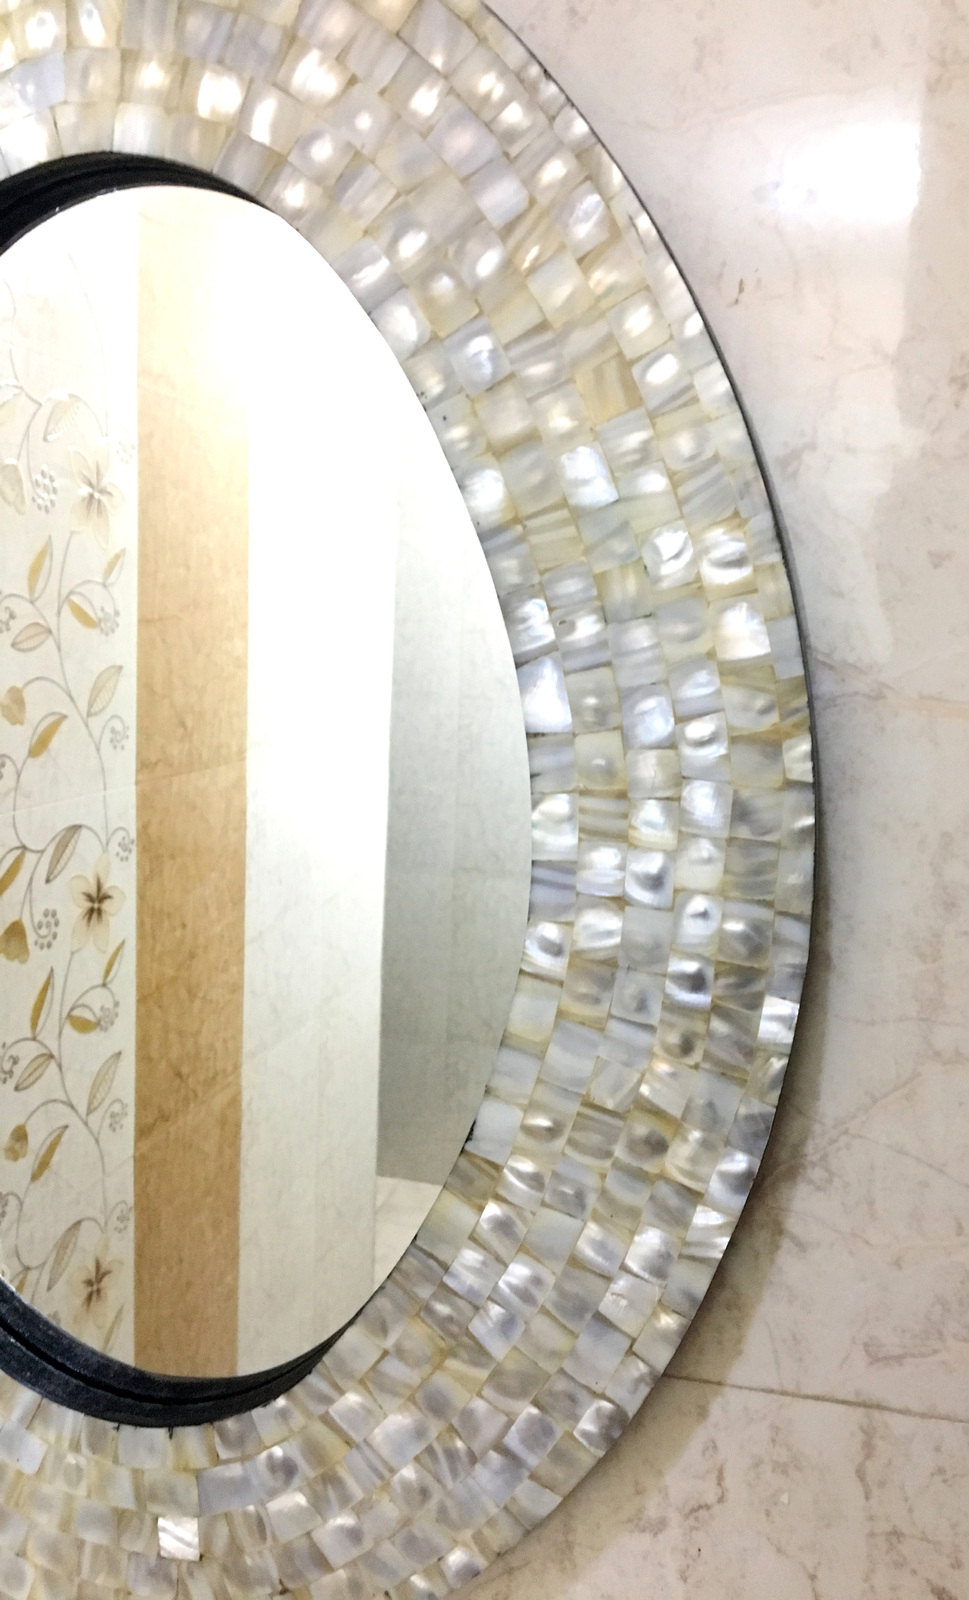 Decorative Beveled Oval Wall Mirror With White Mother Of